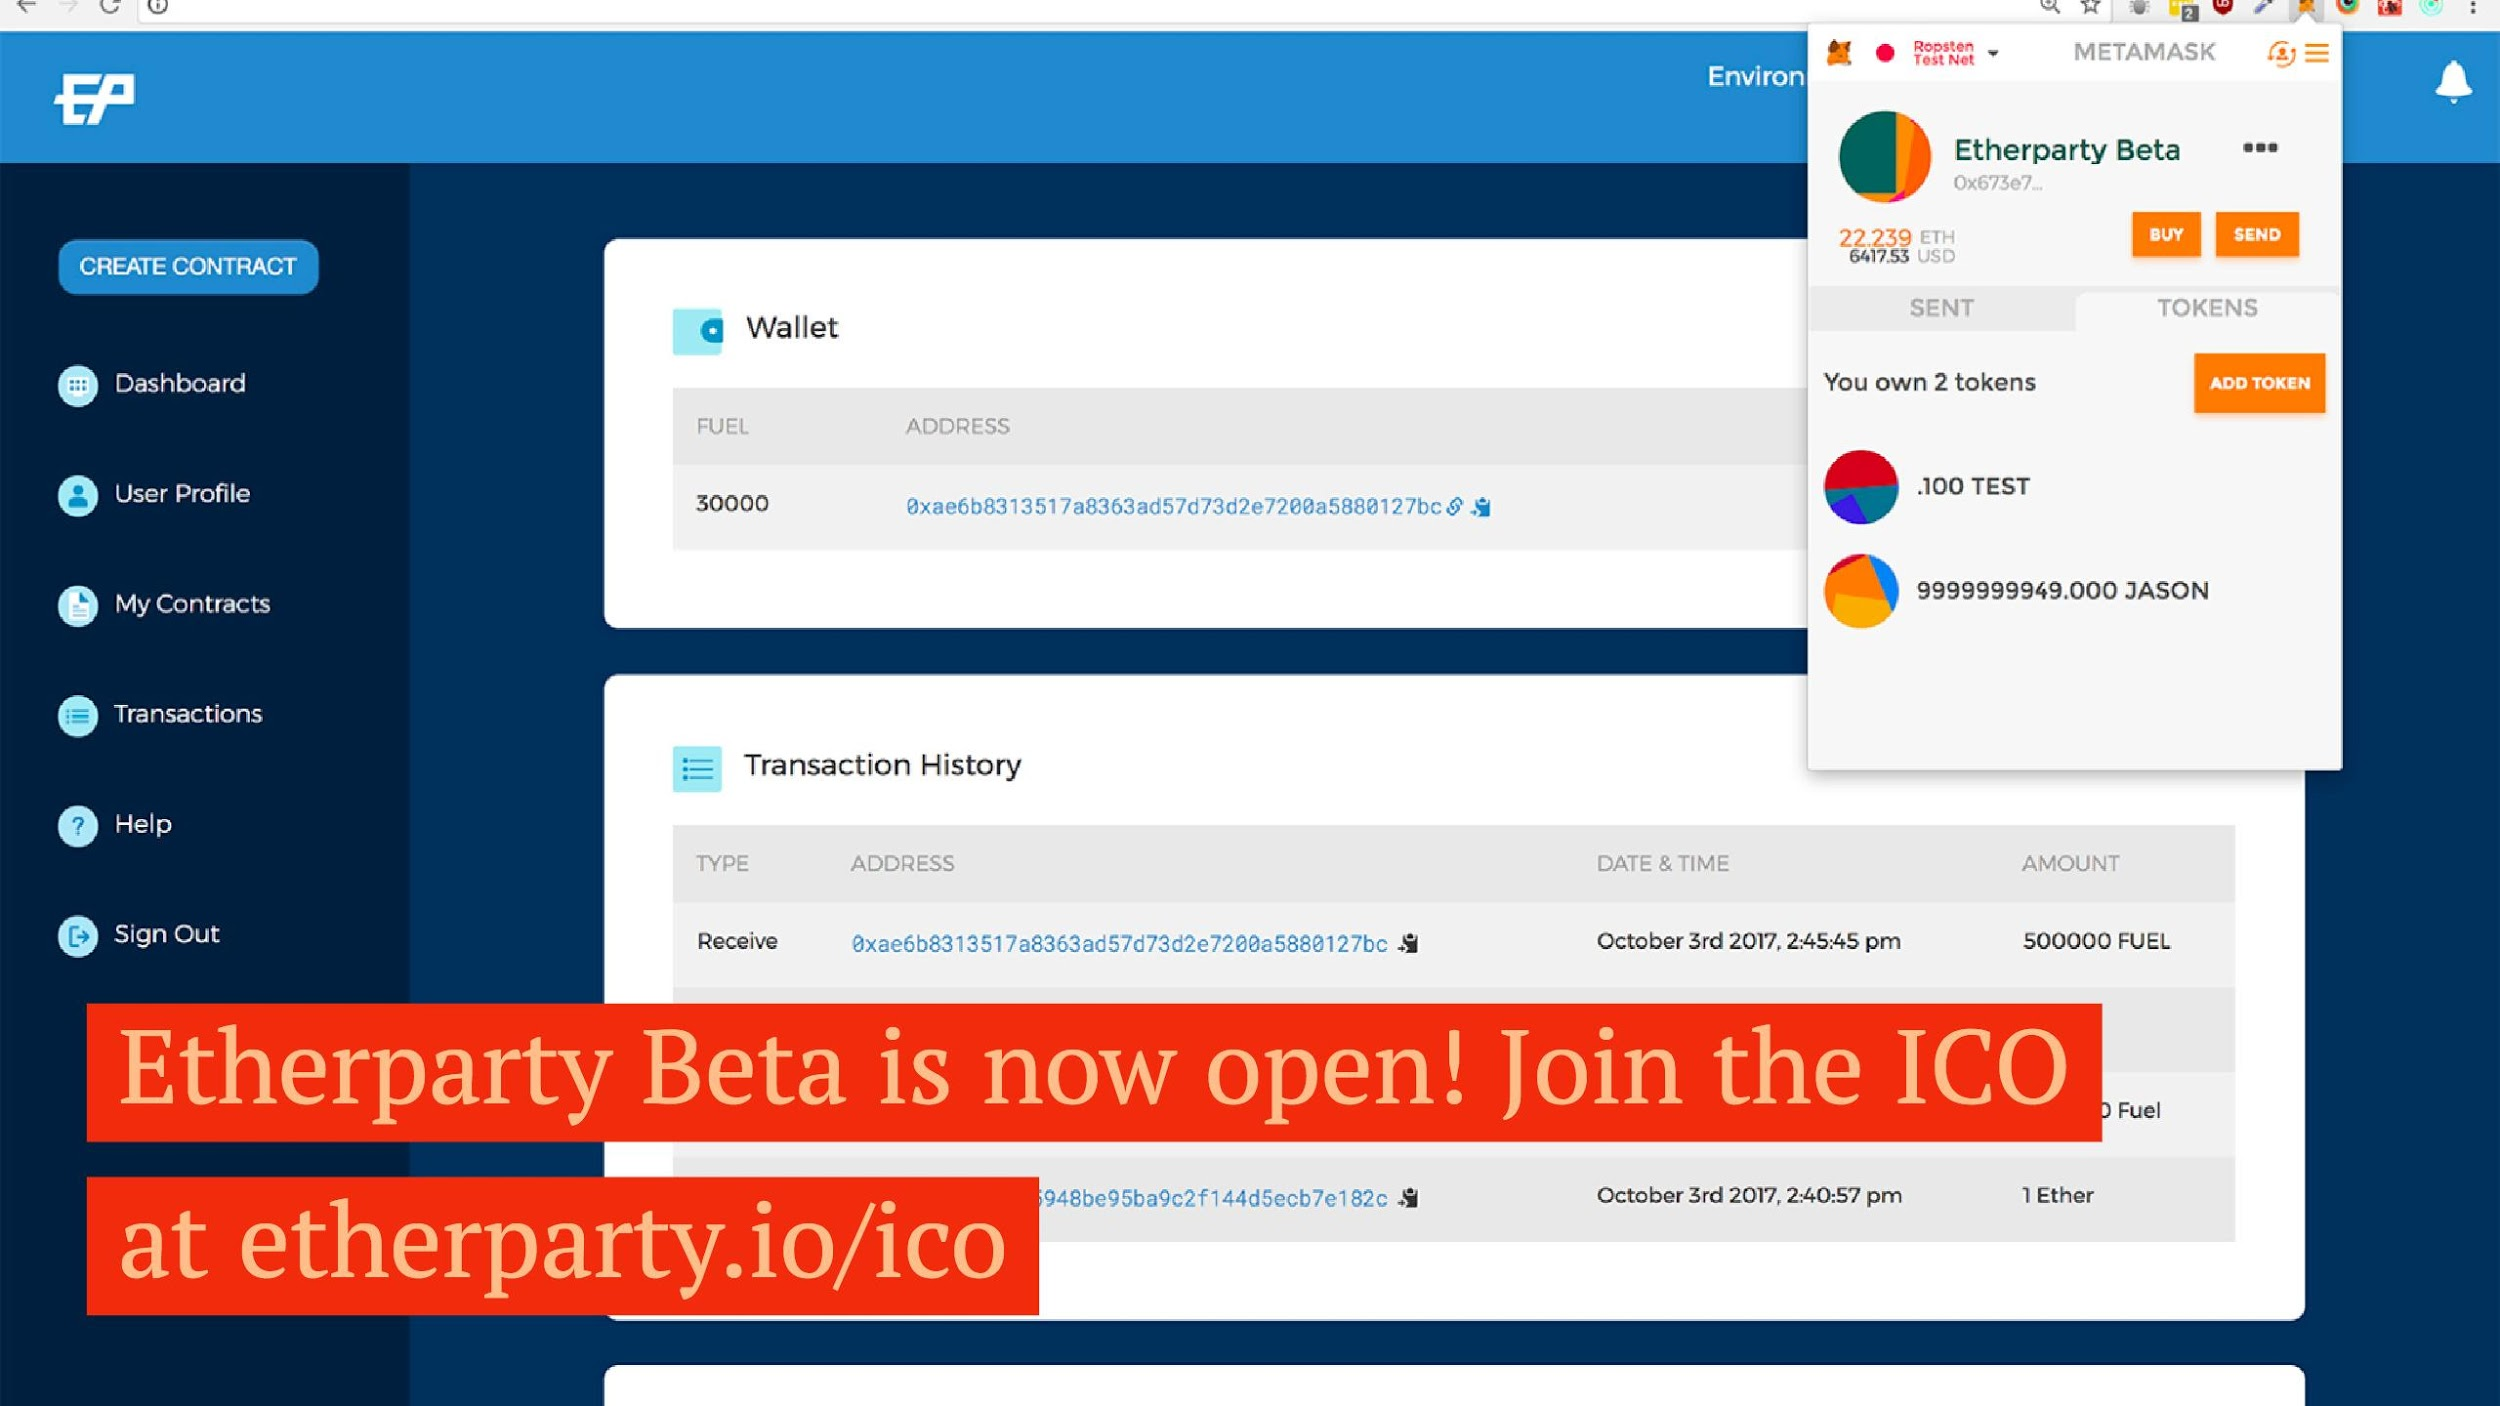 Etherparty Beta Goes Live with 3 Real World Use Cases